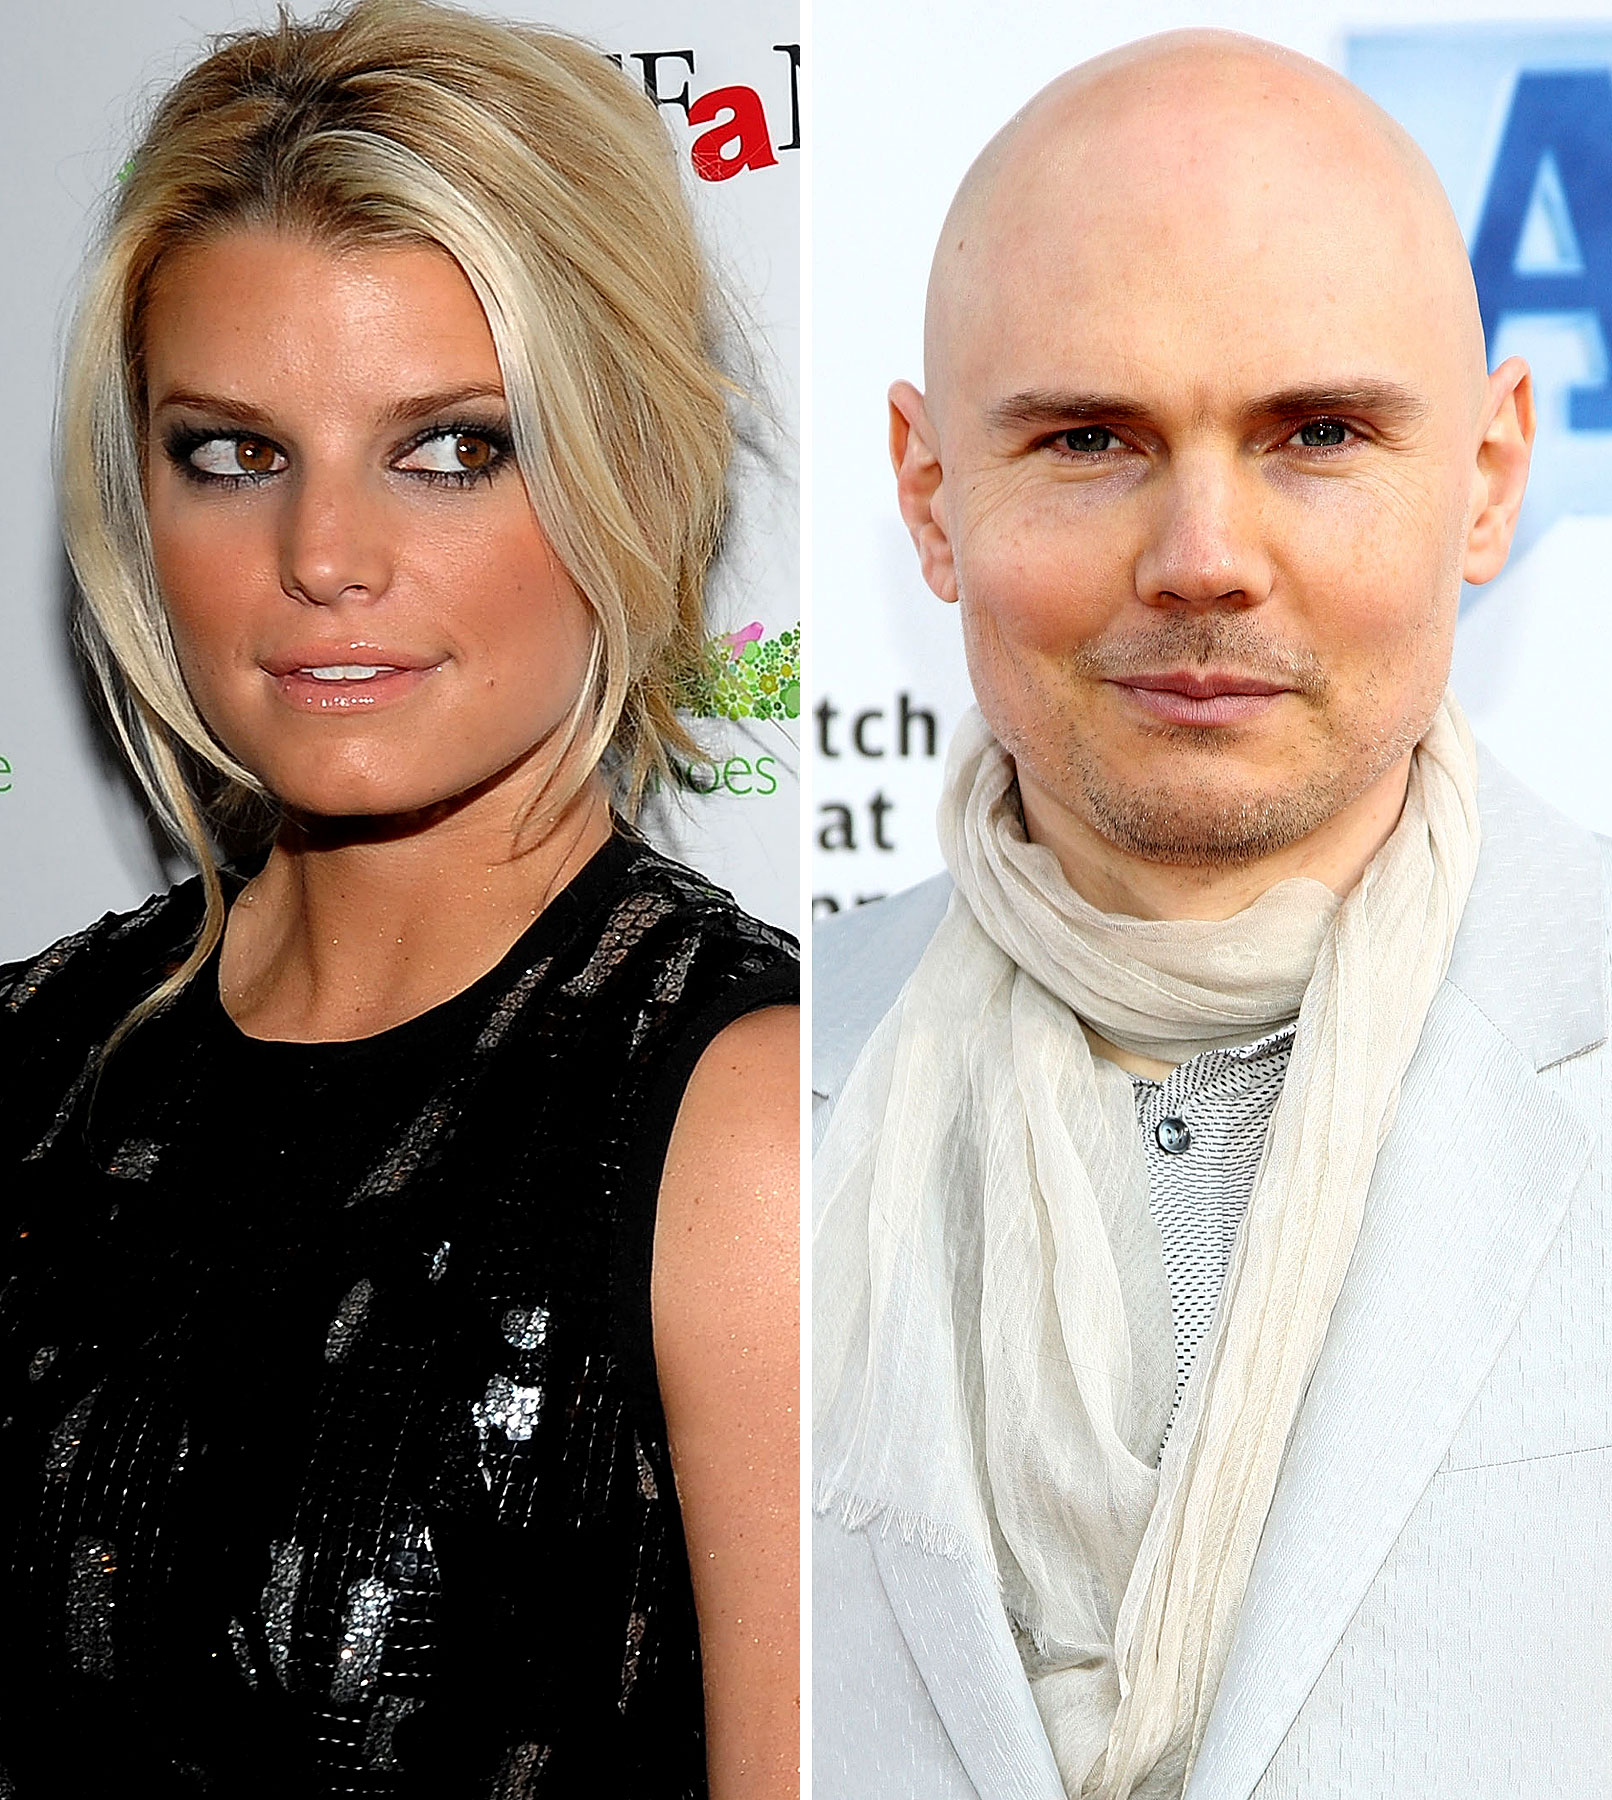 Billy Corgan Continues His Romantic Commitment to Unstable Women With Jessica Simpson